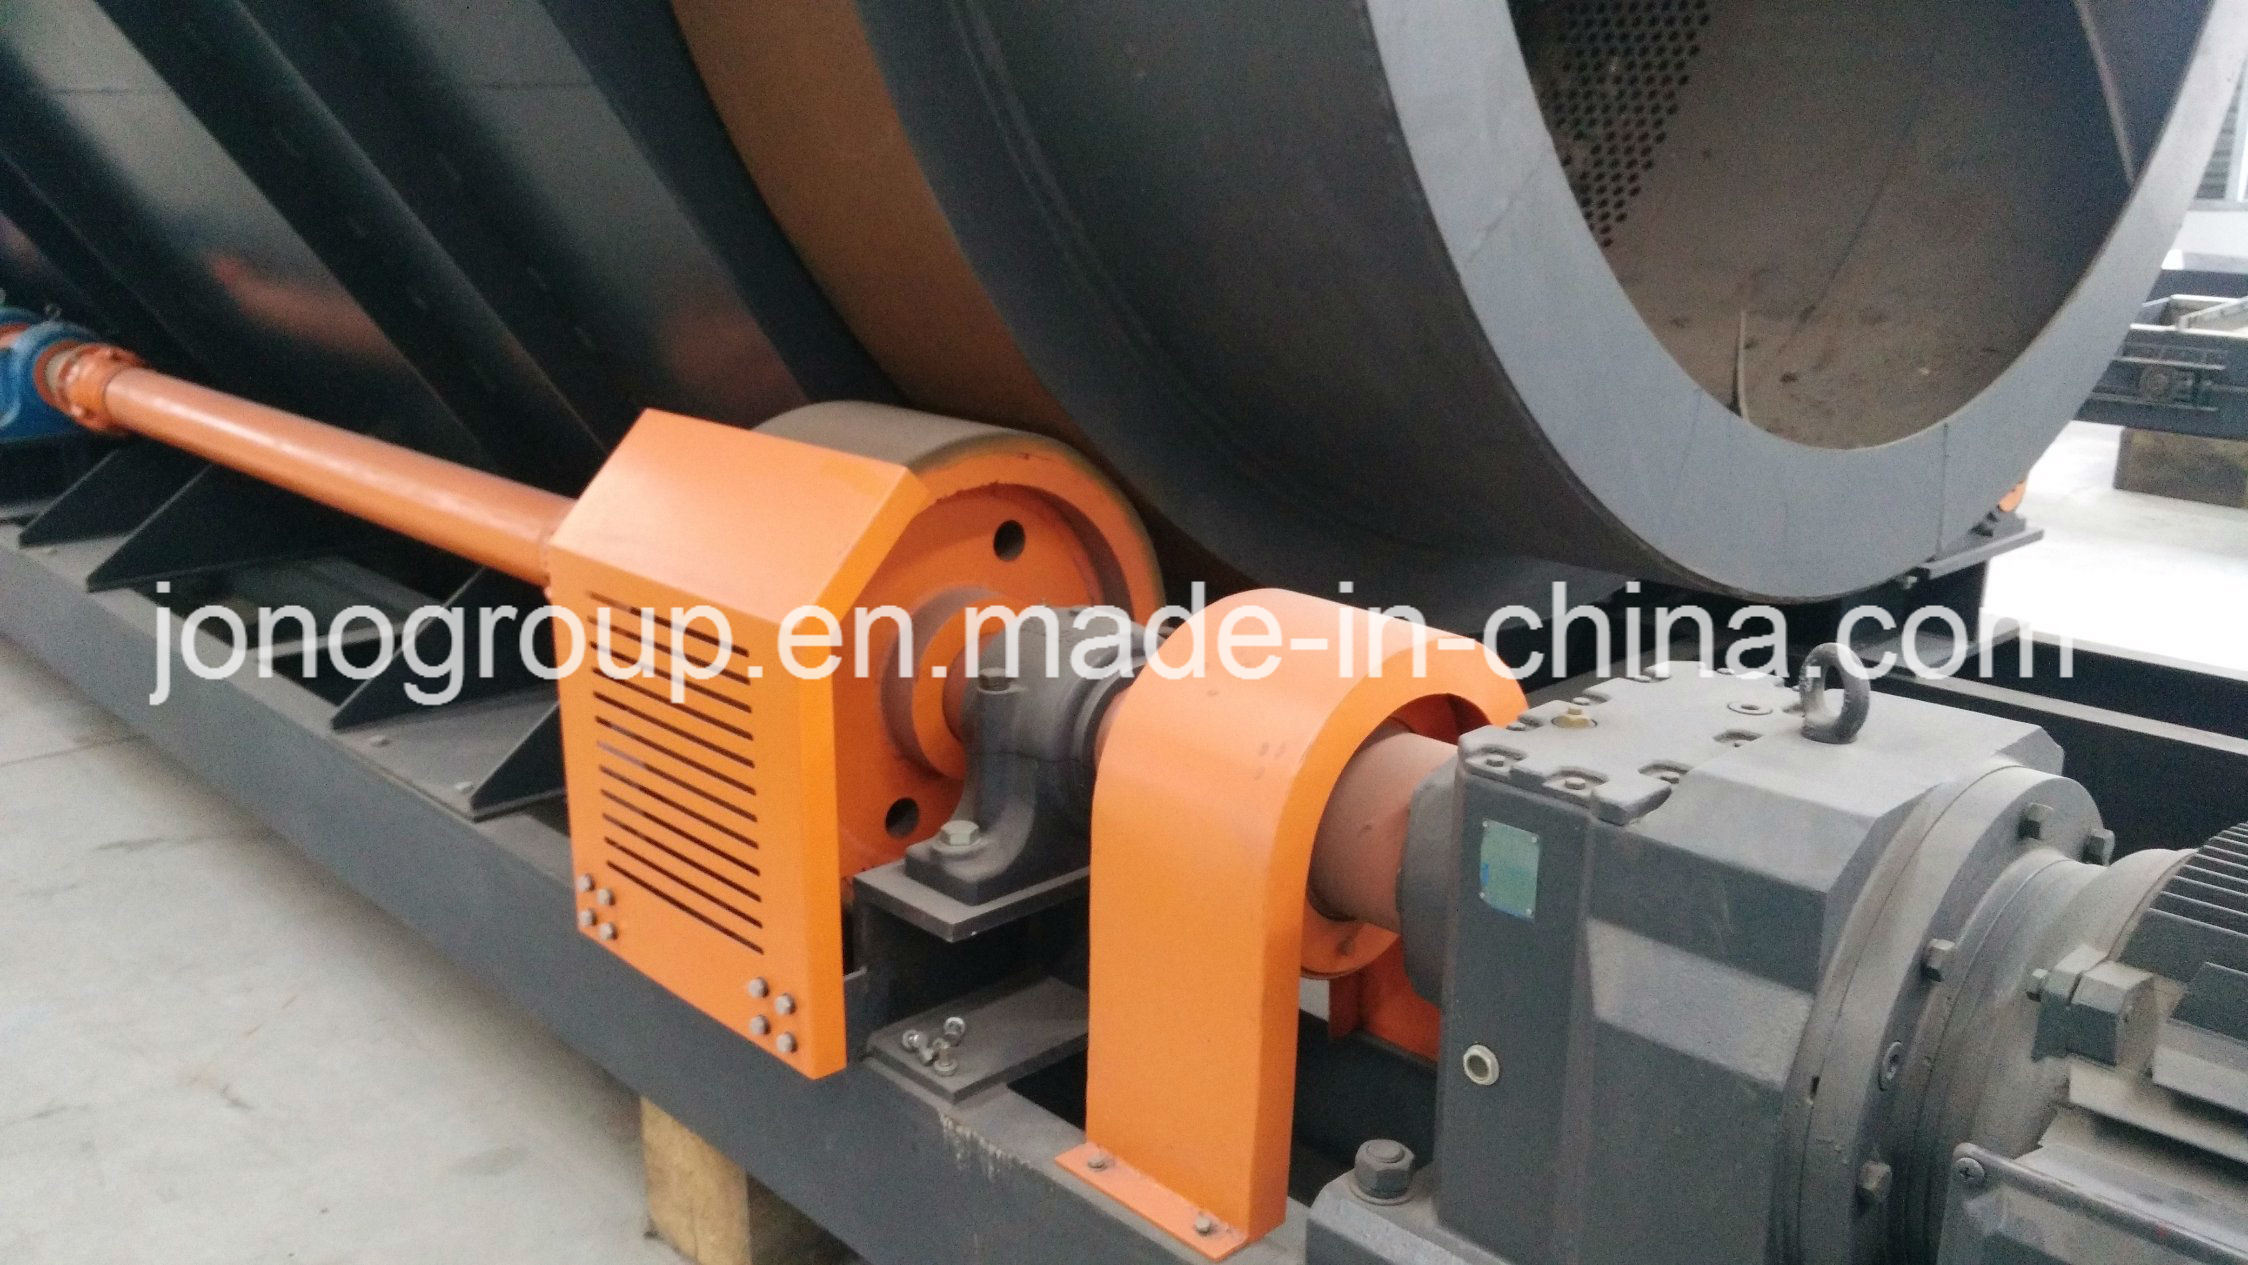 1HSD2005A Trommel Screen (rotary drum screen) for Metal Recycling/MSW